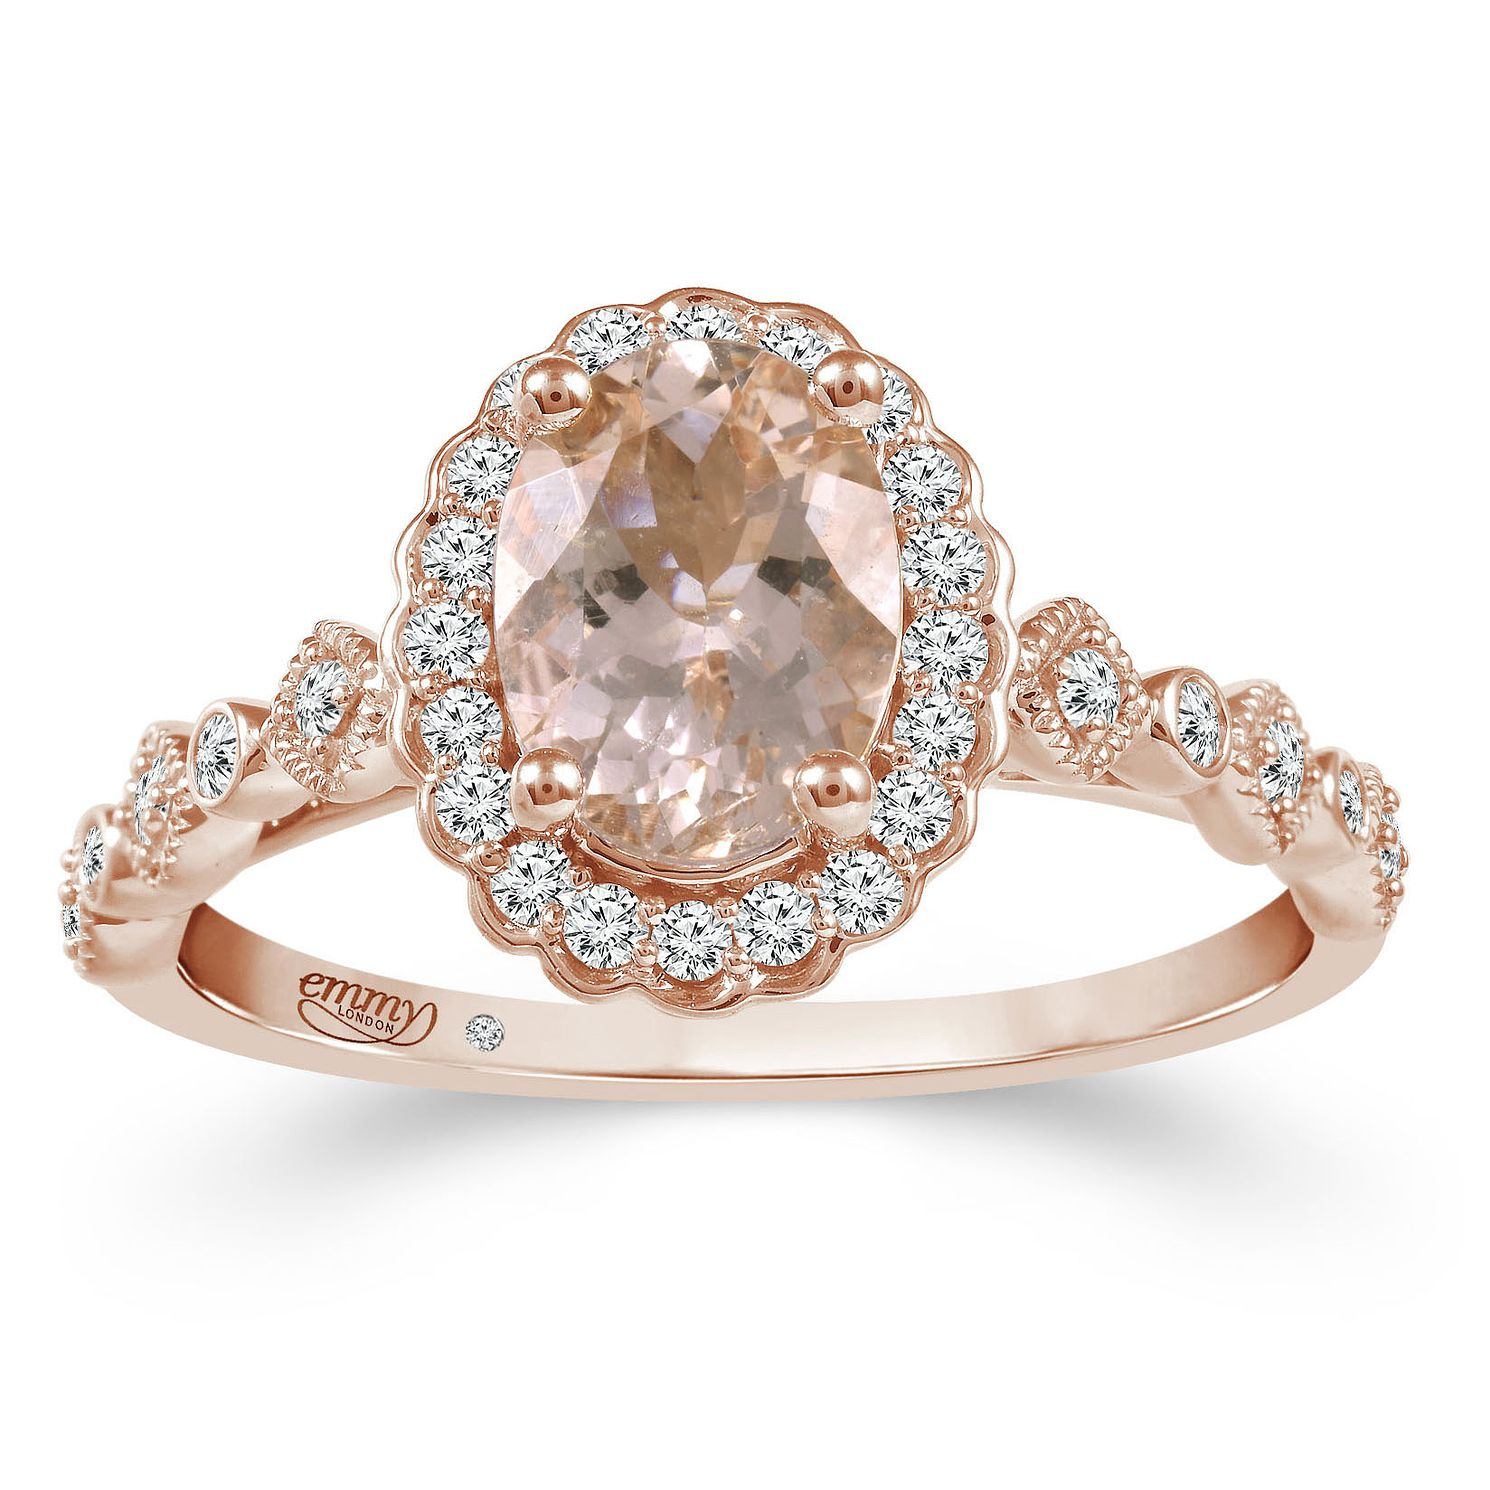 Emmy London 18ct Rose Gold Morganite 1/5ct Diamond Ring - Product number 2885735